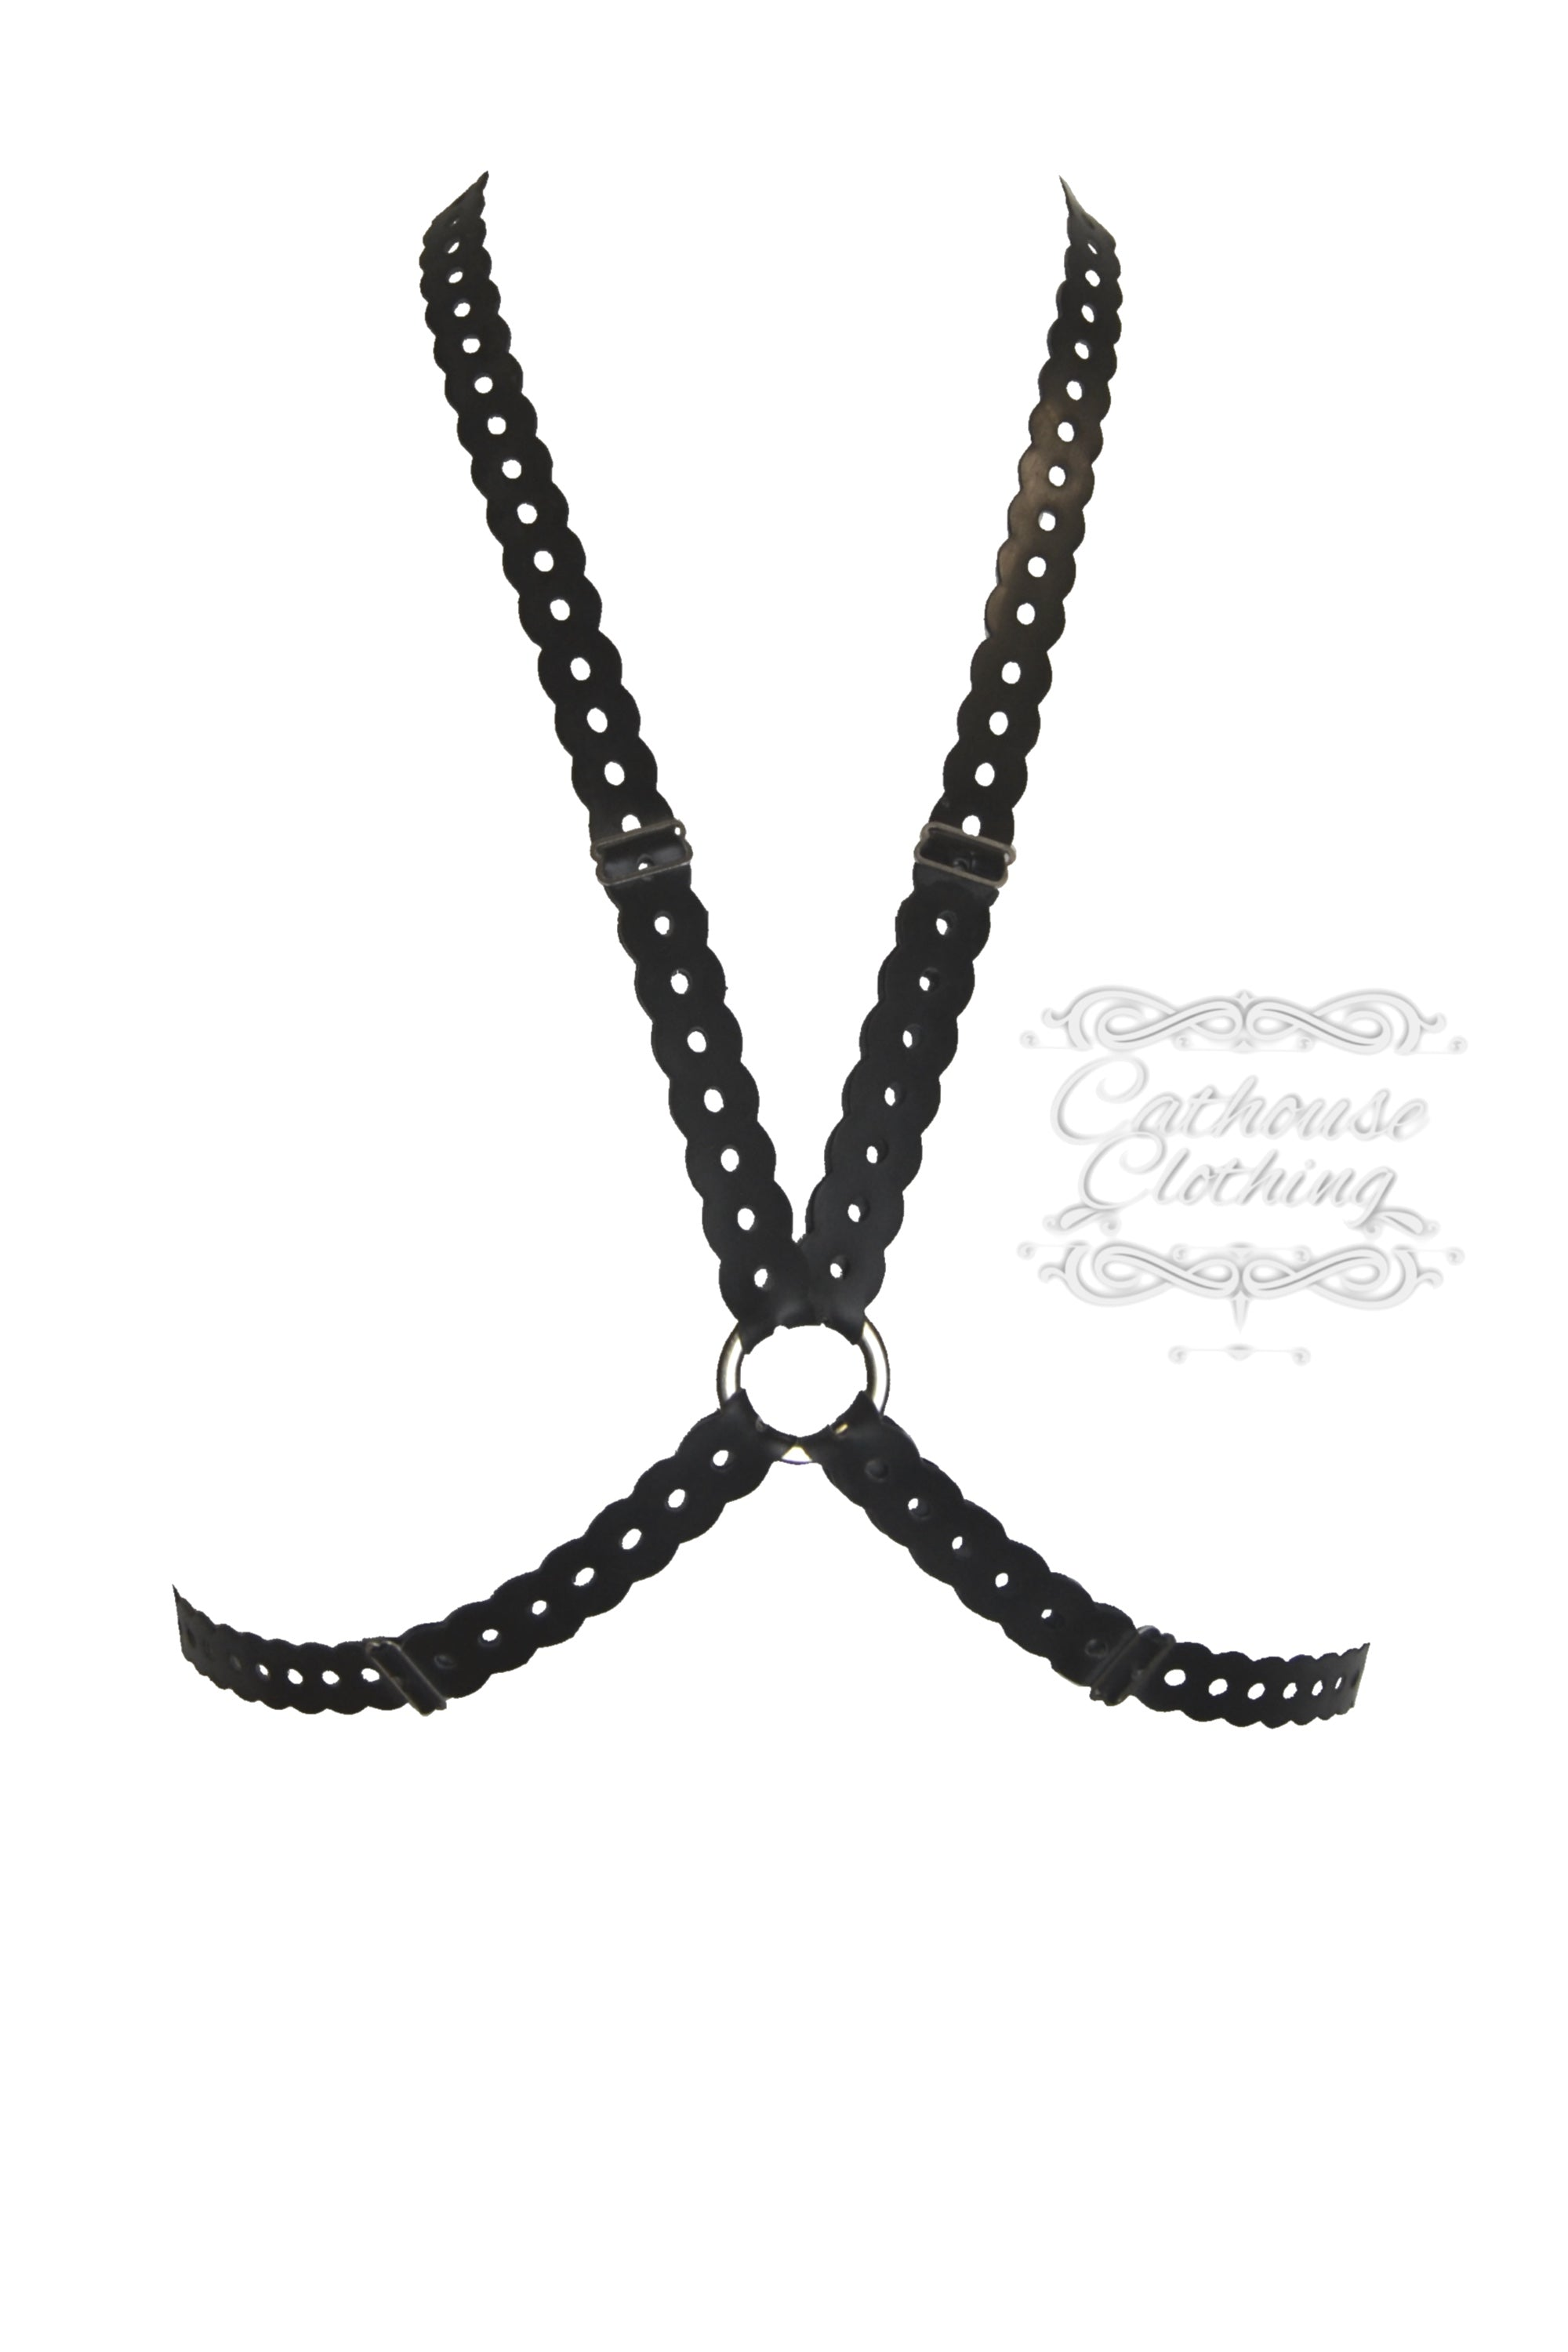 Latex Anika cross harness